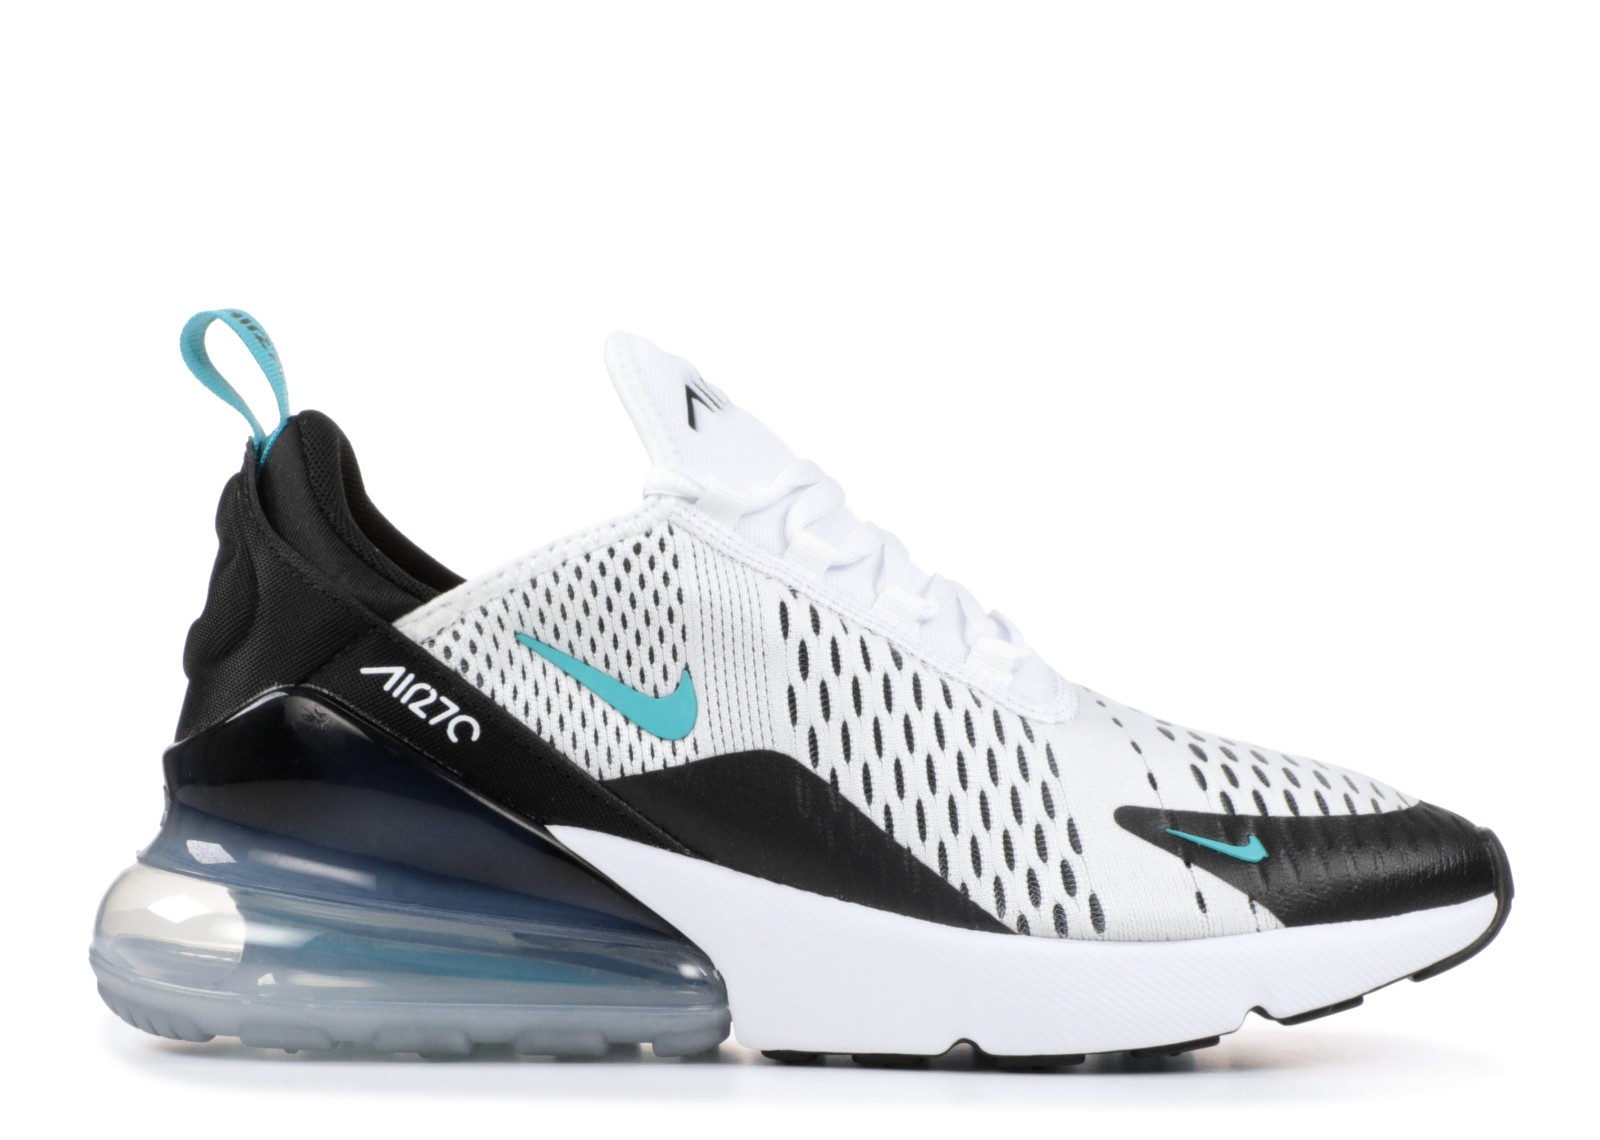 Nike Air Max 270 GS Bianche/Dusty Cactus - 943345-101